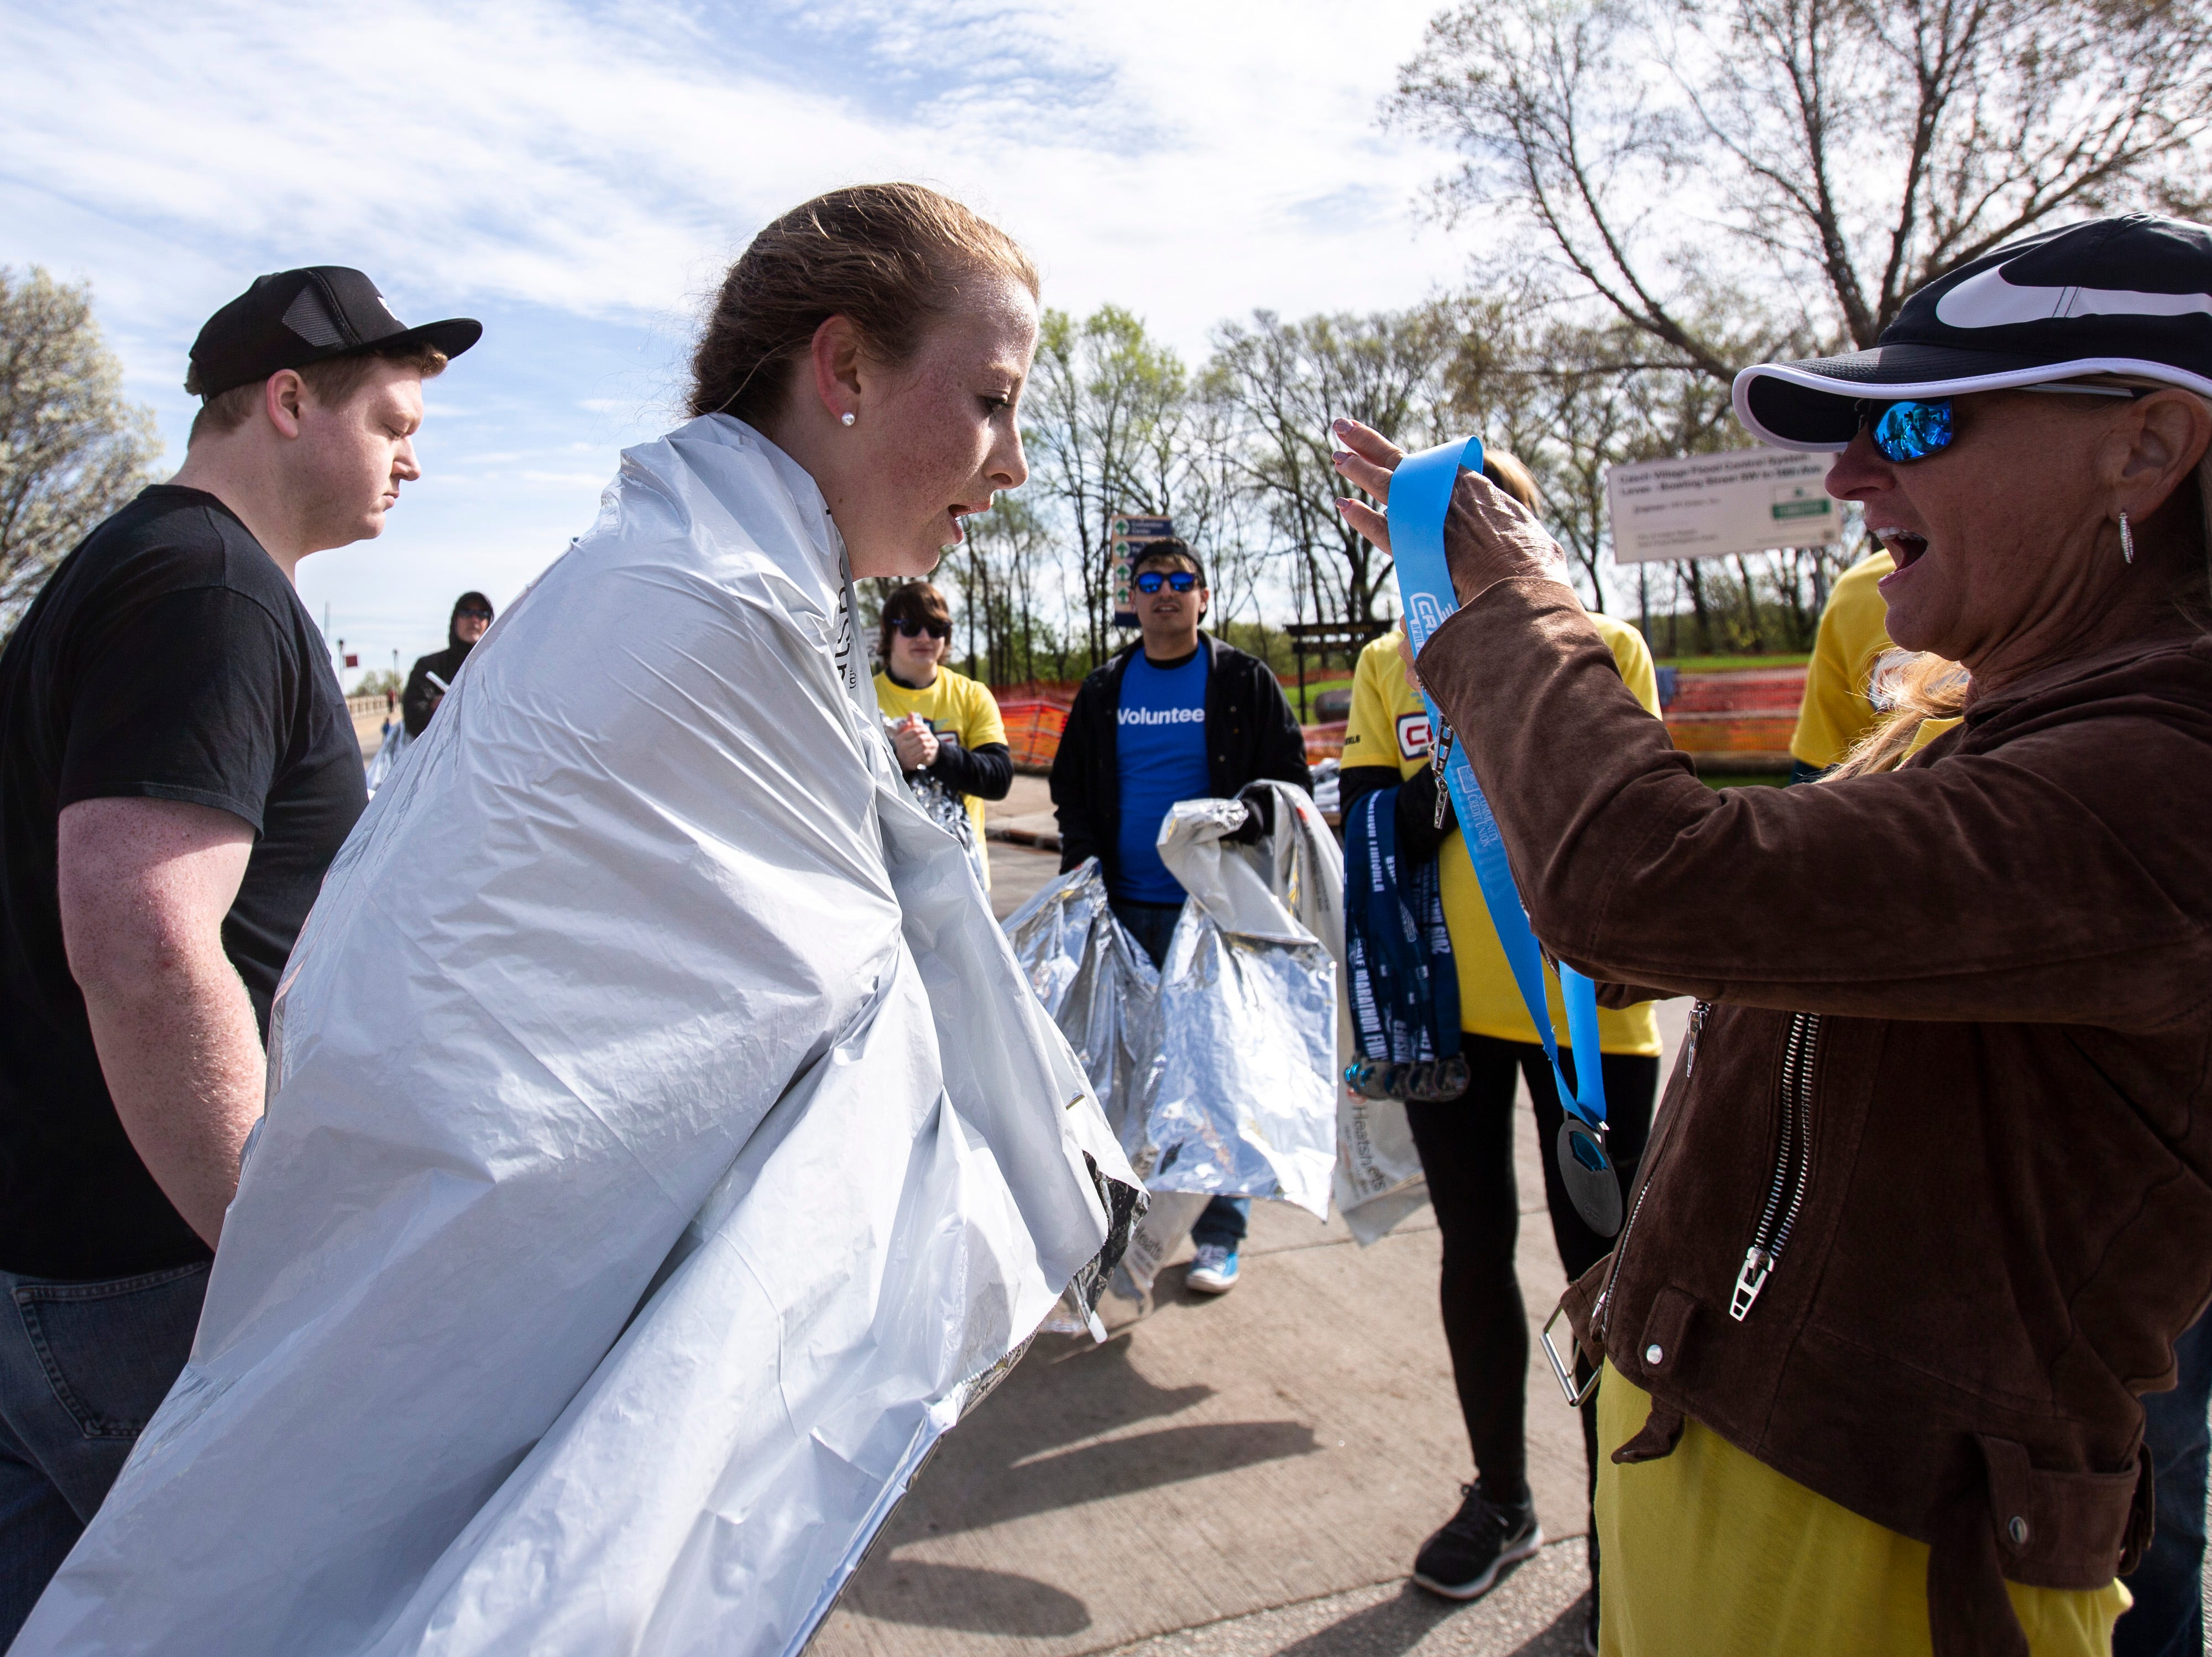 Regan Weidner receives a medal past the finish line after being the first woman to finish the half marathon during the second annual Run CRANDIC marathon, Sunday, April 28, 2019, along 16th Avenue SE in Cedar Rapids, Iowa. Weidner finished with a time of 1:24:26.